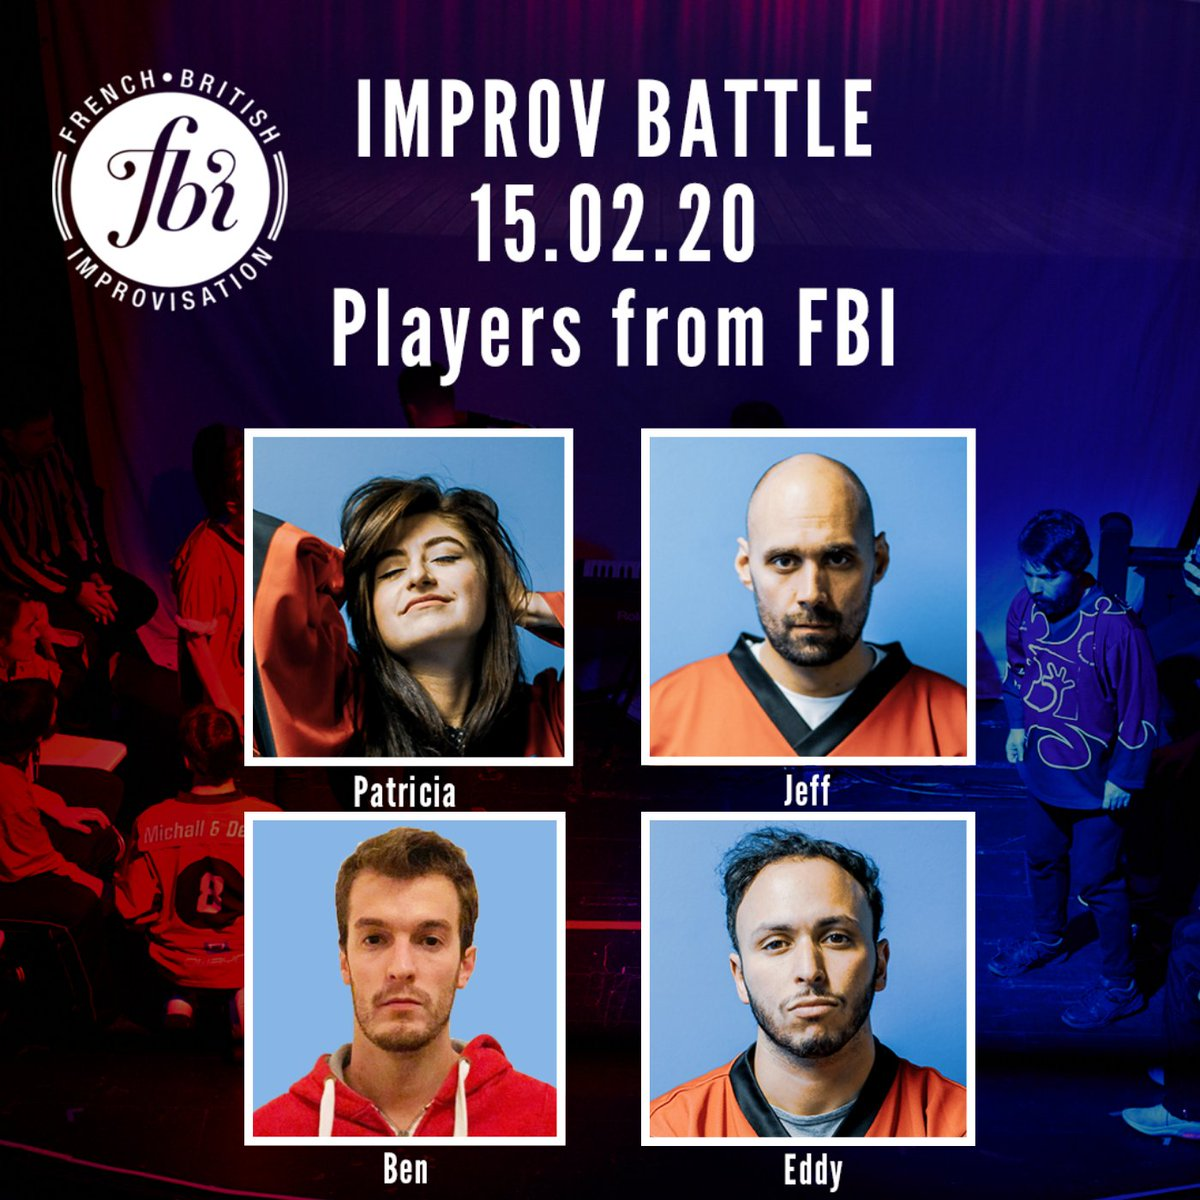 Our comedians are ready for tomorrow's Improv Battle! Last Tickets : https://www.ticketsource.co.uk/fbi-improvisation …  #londoncomedy #londontheatre #francaisalondres #improvpic.twitter.com/2nUBXYwcWh